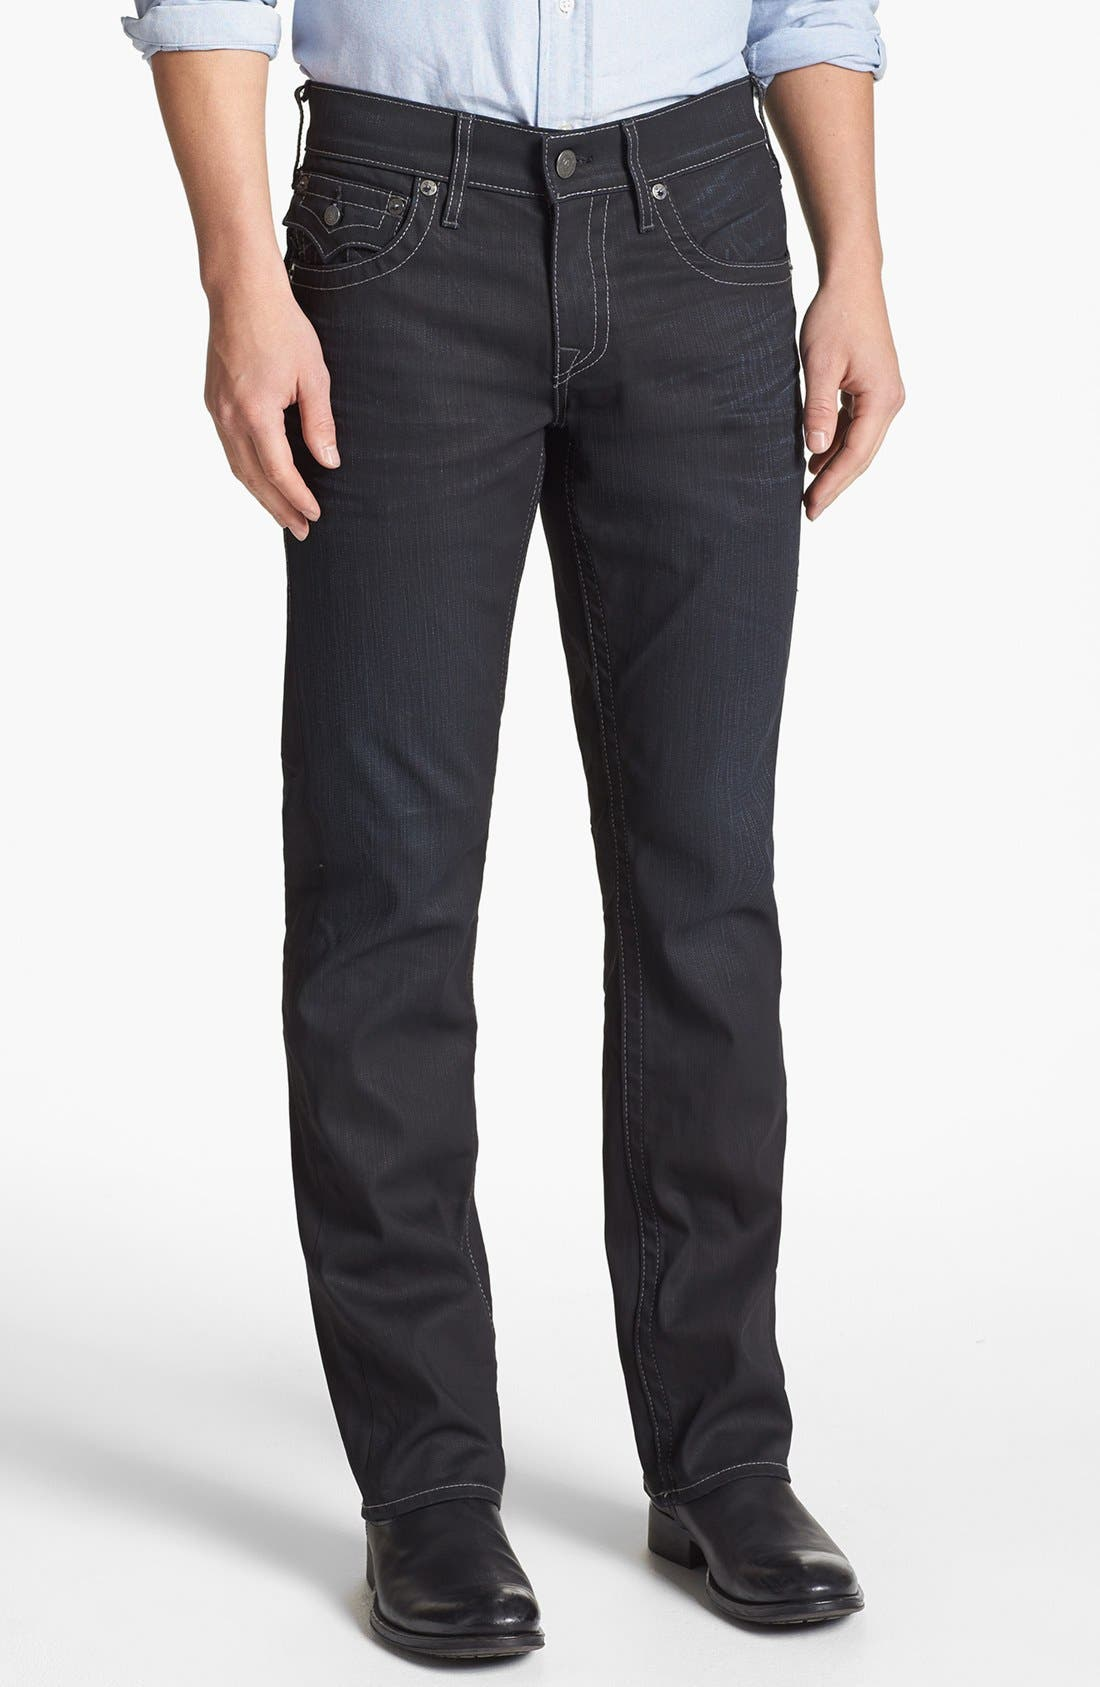 Alternate Image 2  - True Religion Brand Jeans 'Ricky' Coated Straight Leg Jeans (Gbd Black Rider)